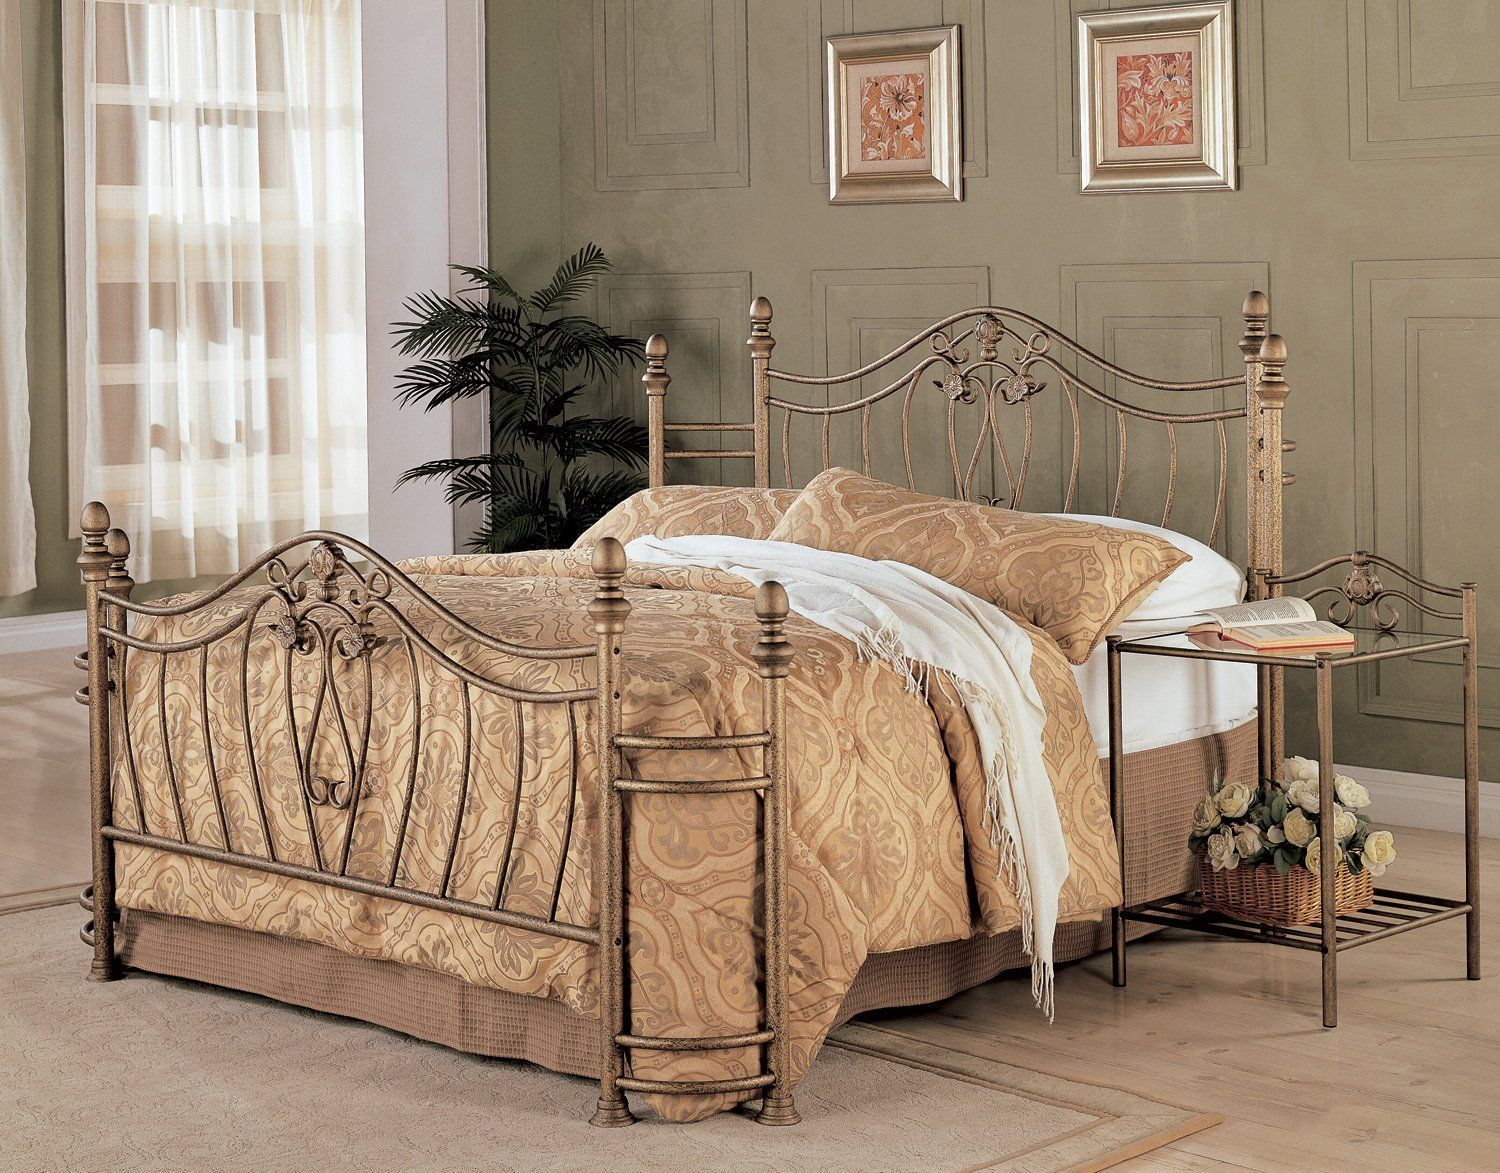 Sydney Golden Metal Queen Bed Bedroom Set Headboards For Beds